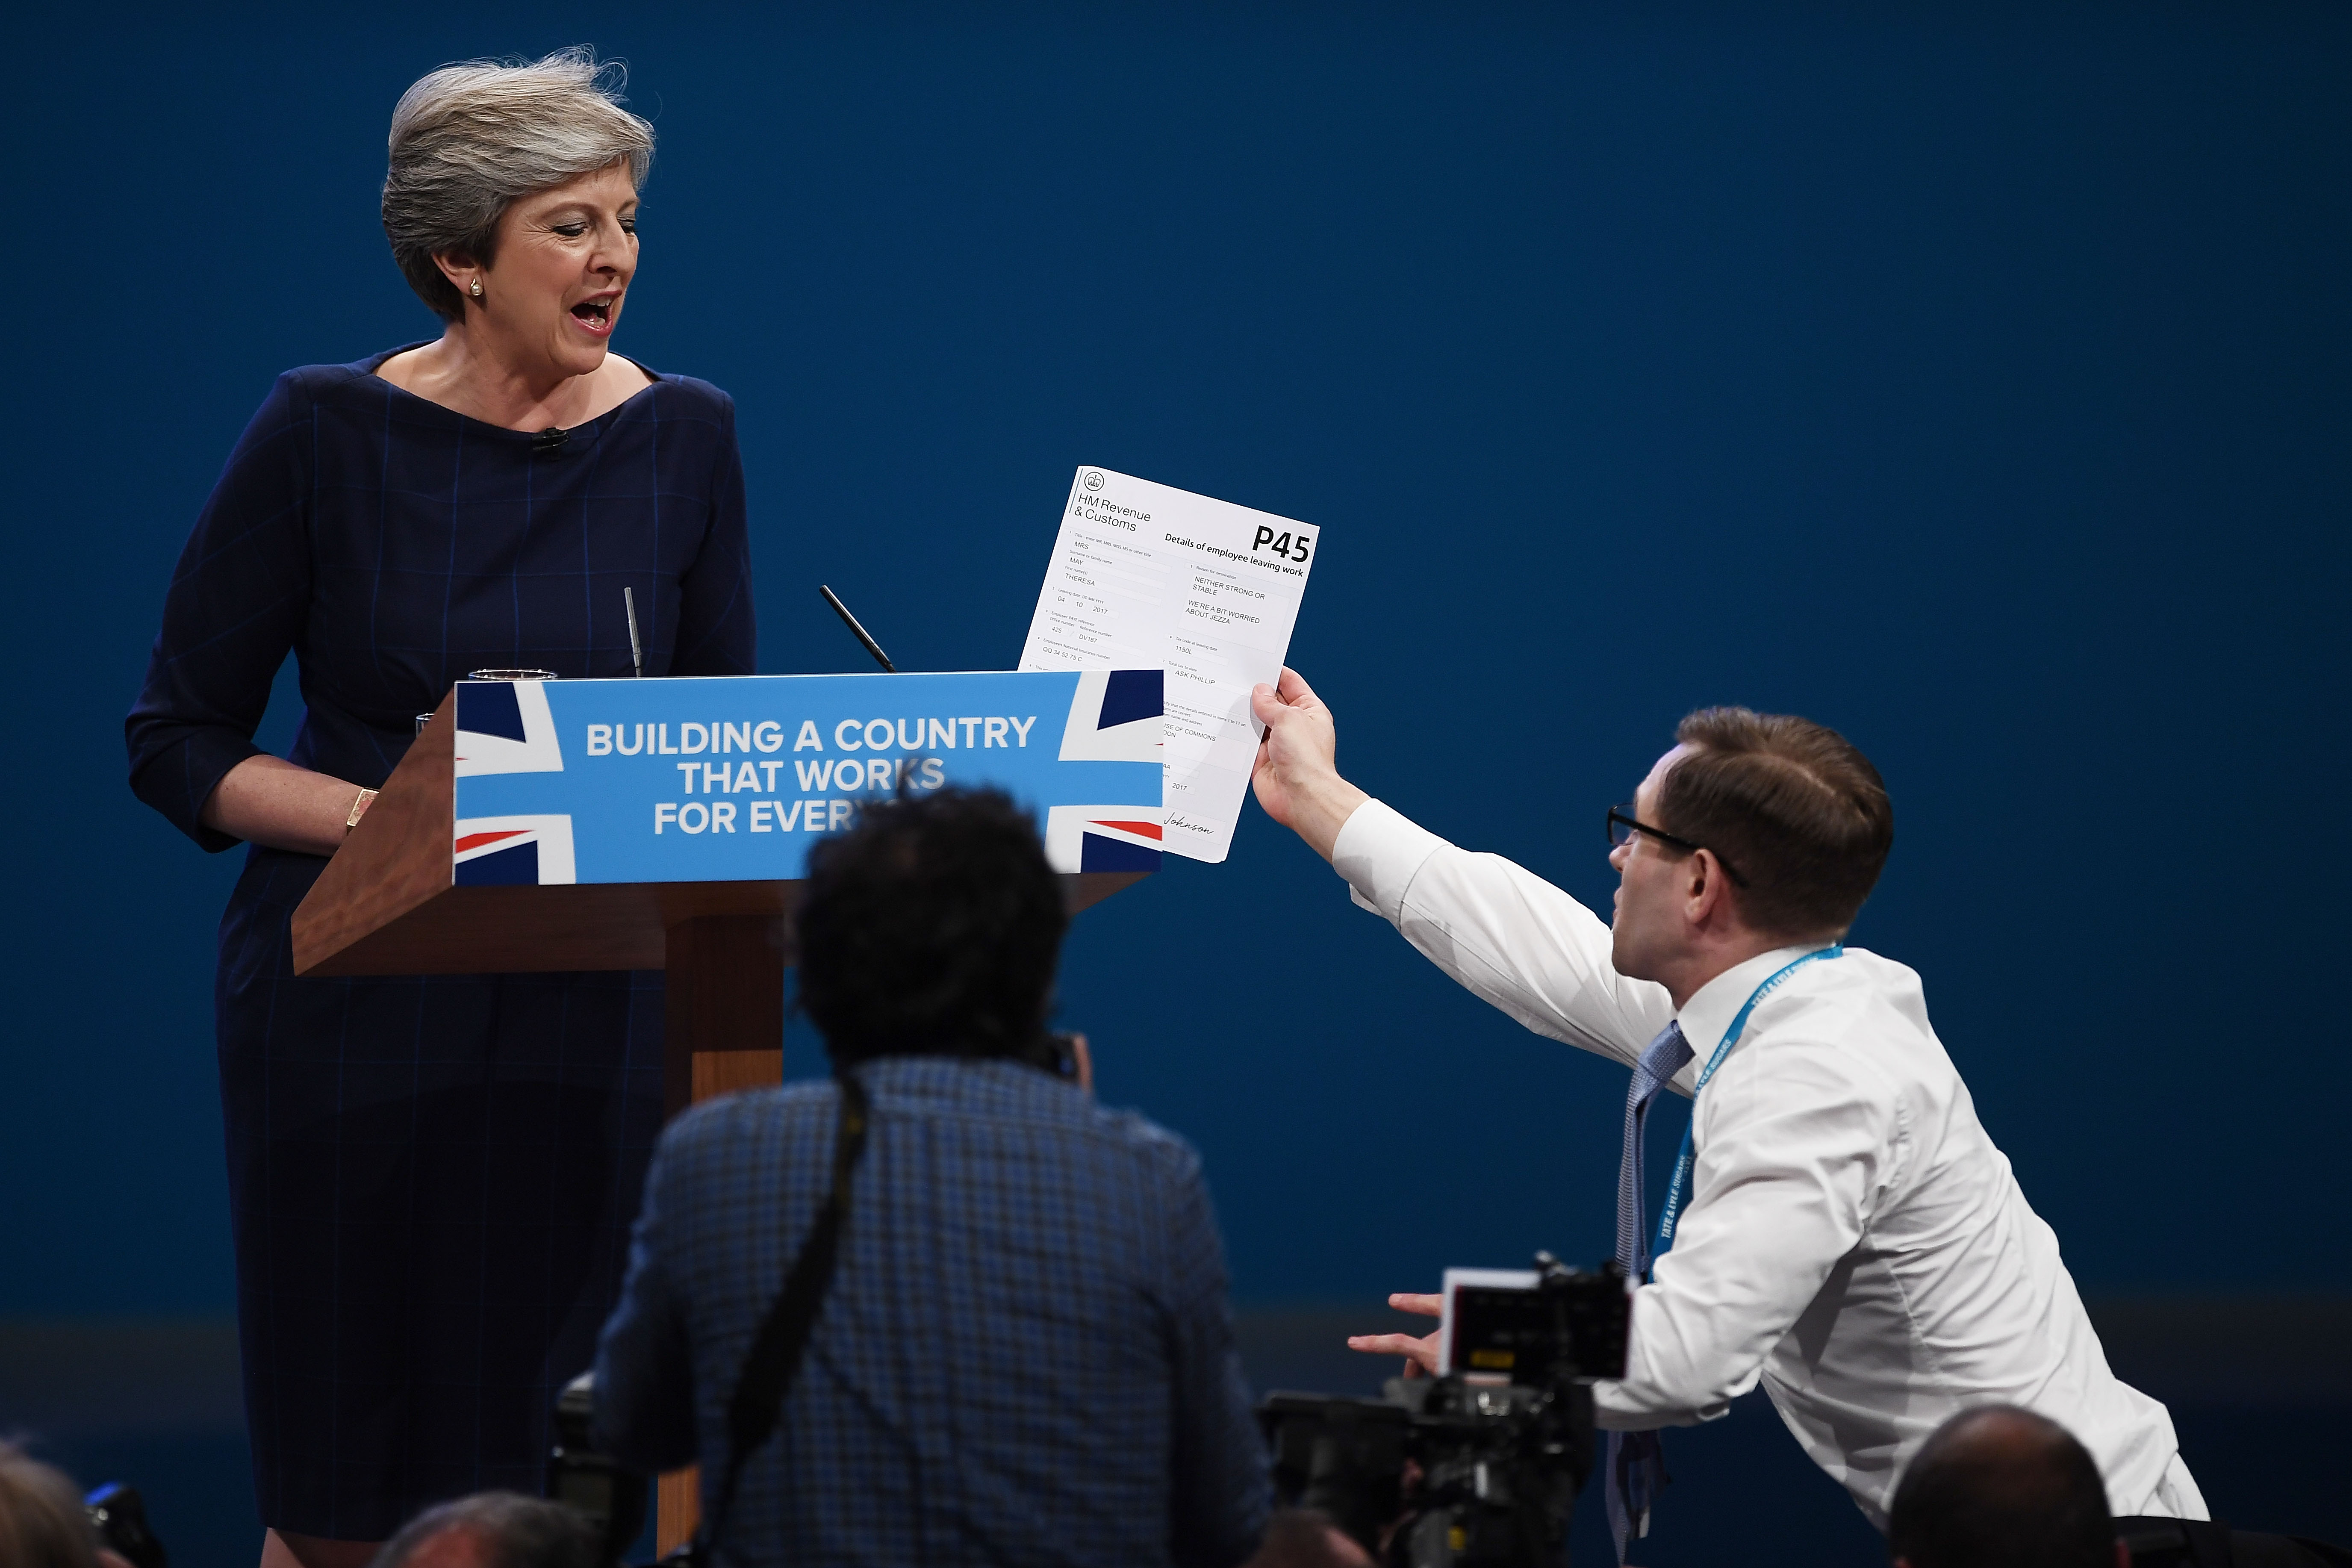 Comedian Simon Brodkin, aka prankster Lee Nelson, hands Prime Minister Theresa May a P45 during her keynote speech to delegates and party members on the last day of the Conservative Party Conference in Manchester on Oct. 4, 2017